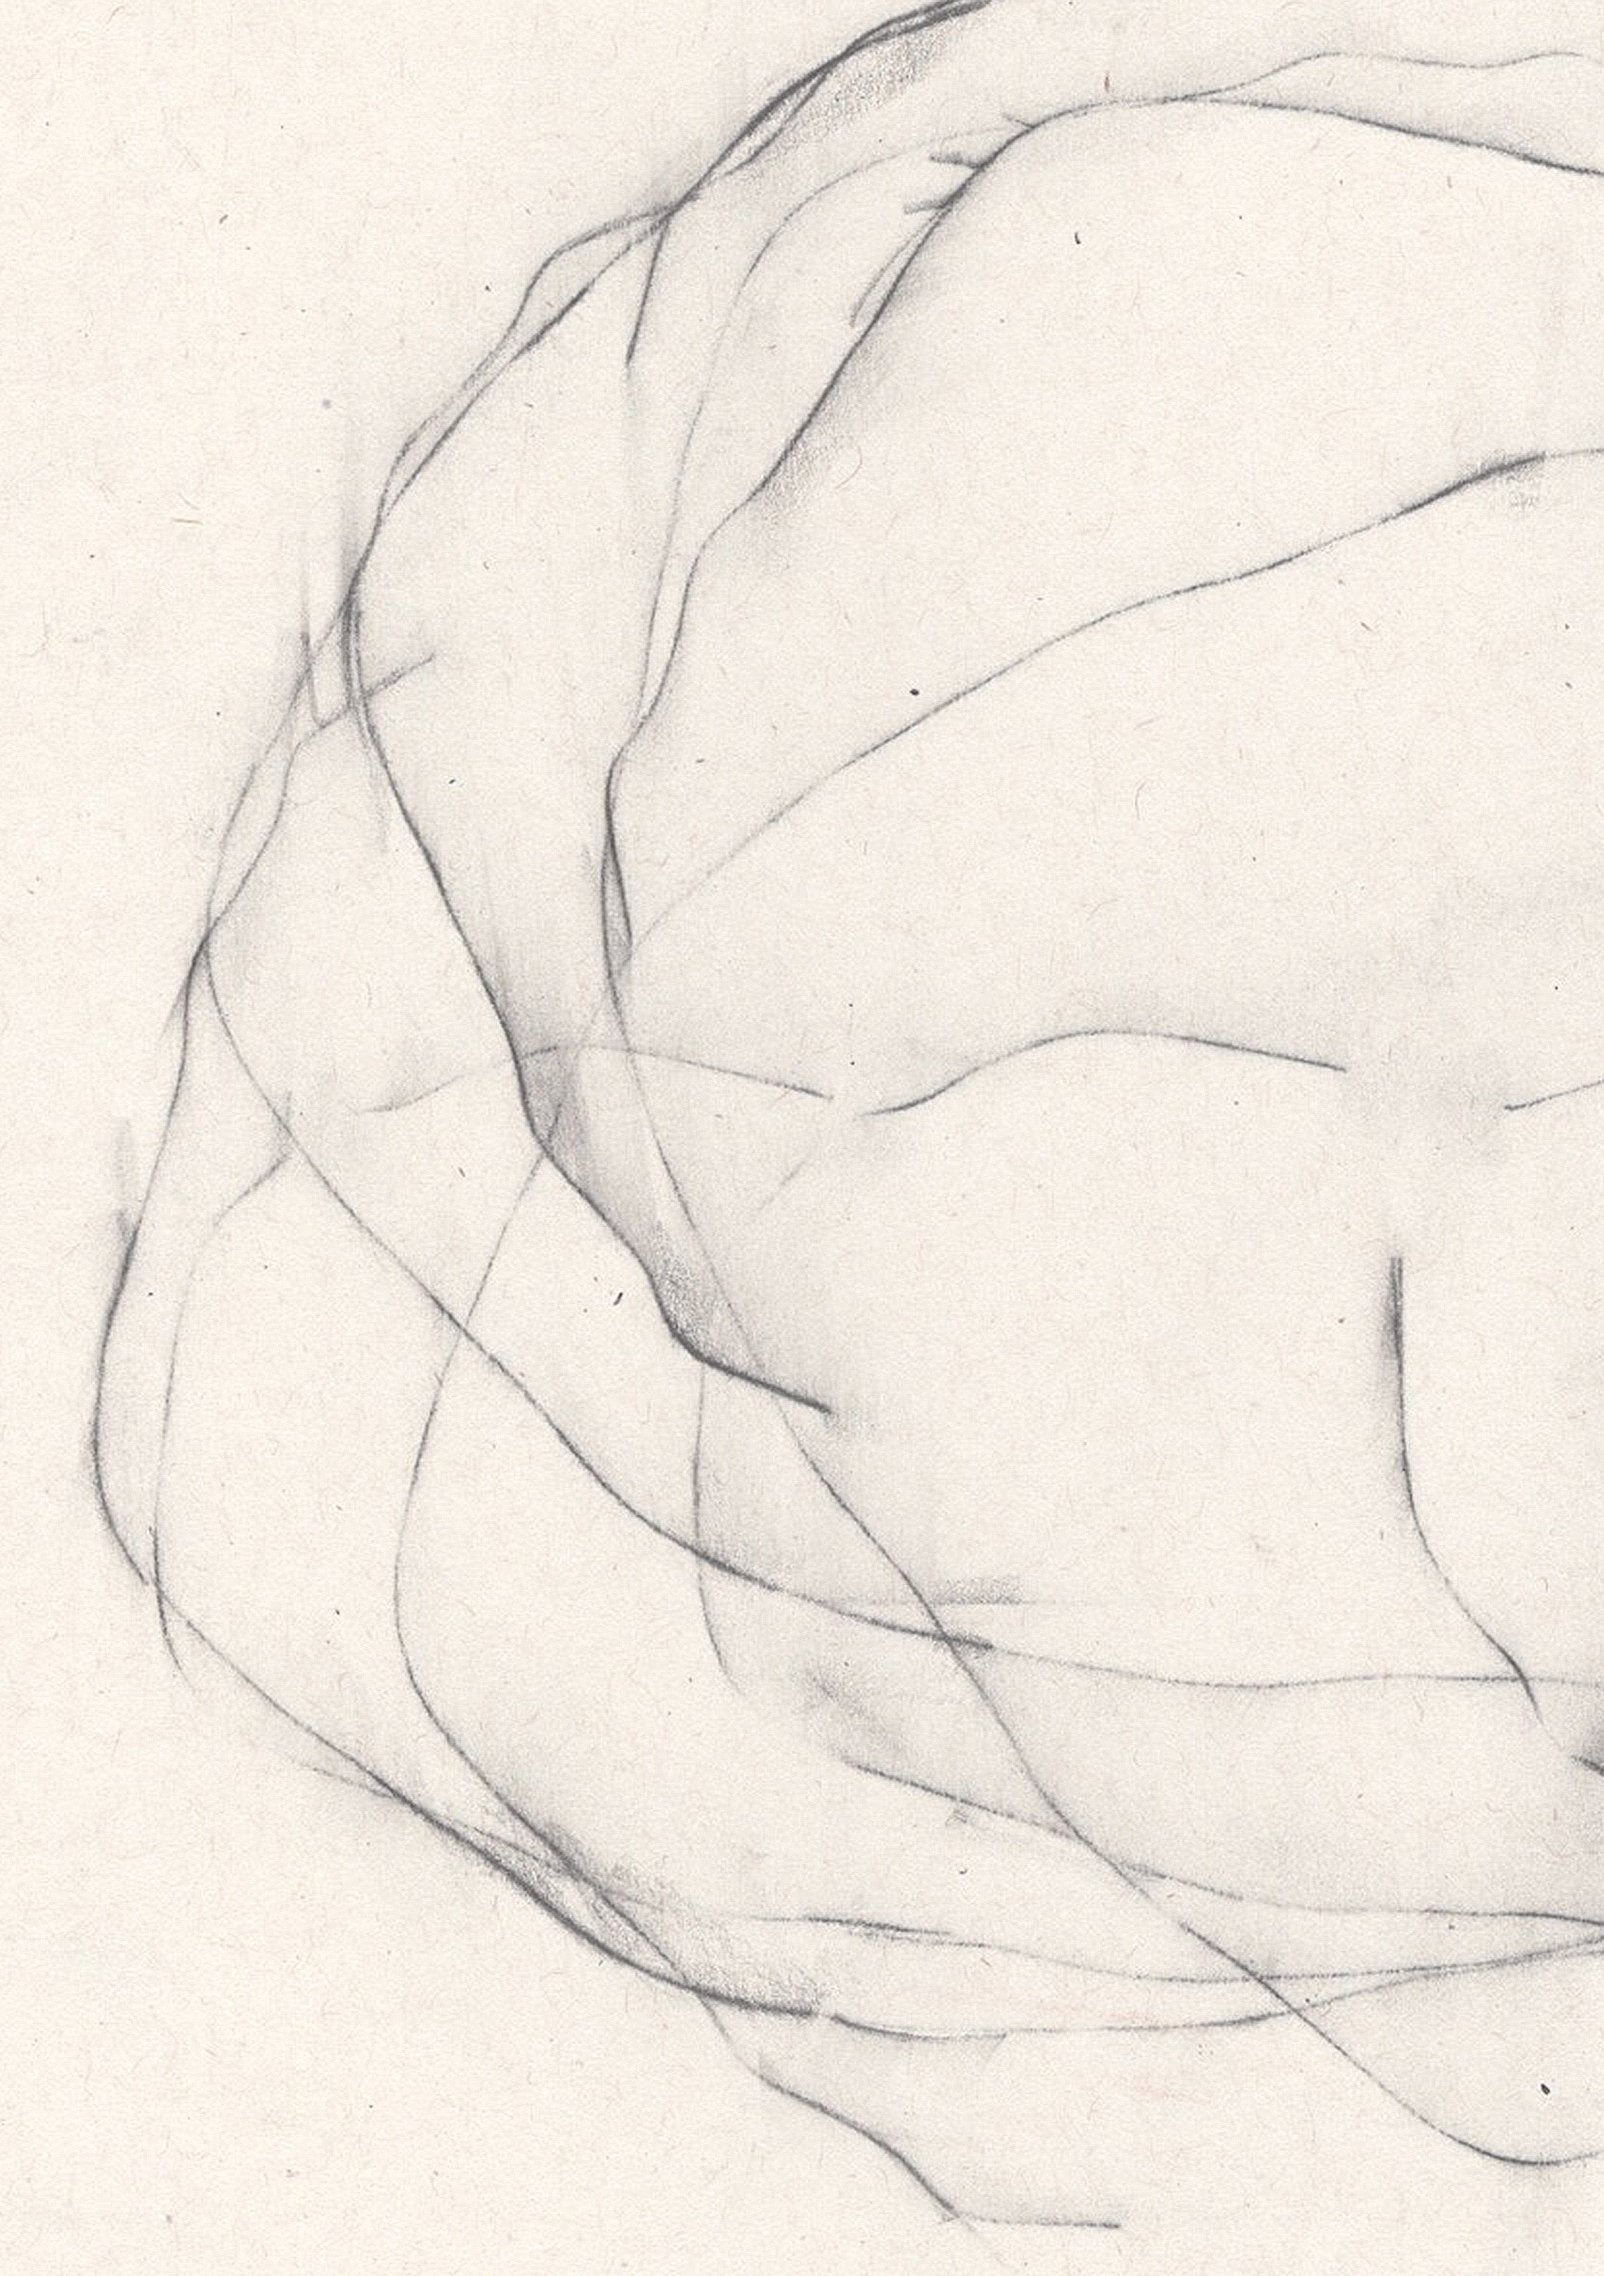 Detail of 'Unsettled X', an abstract, minimalist drawing by contemporary emerging artist Kayleigh Harris